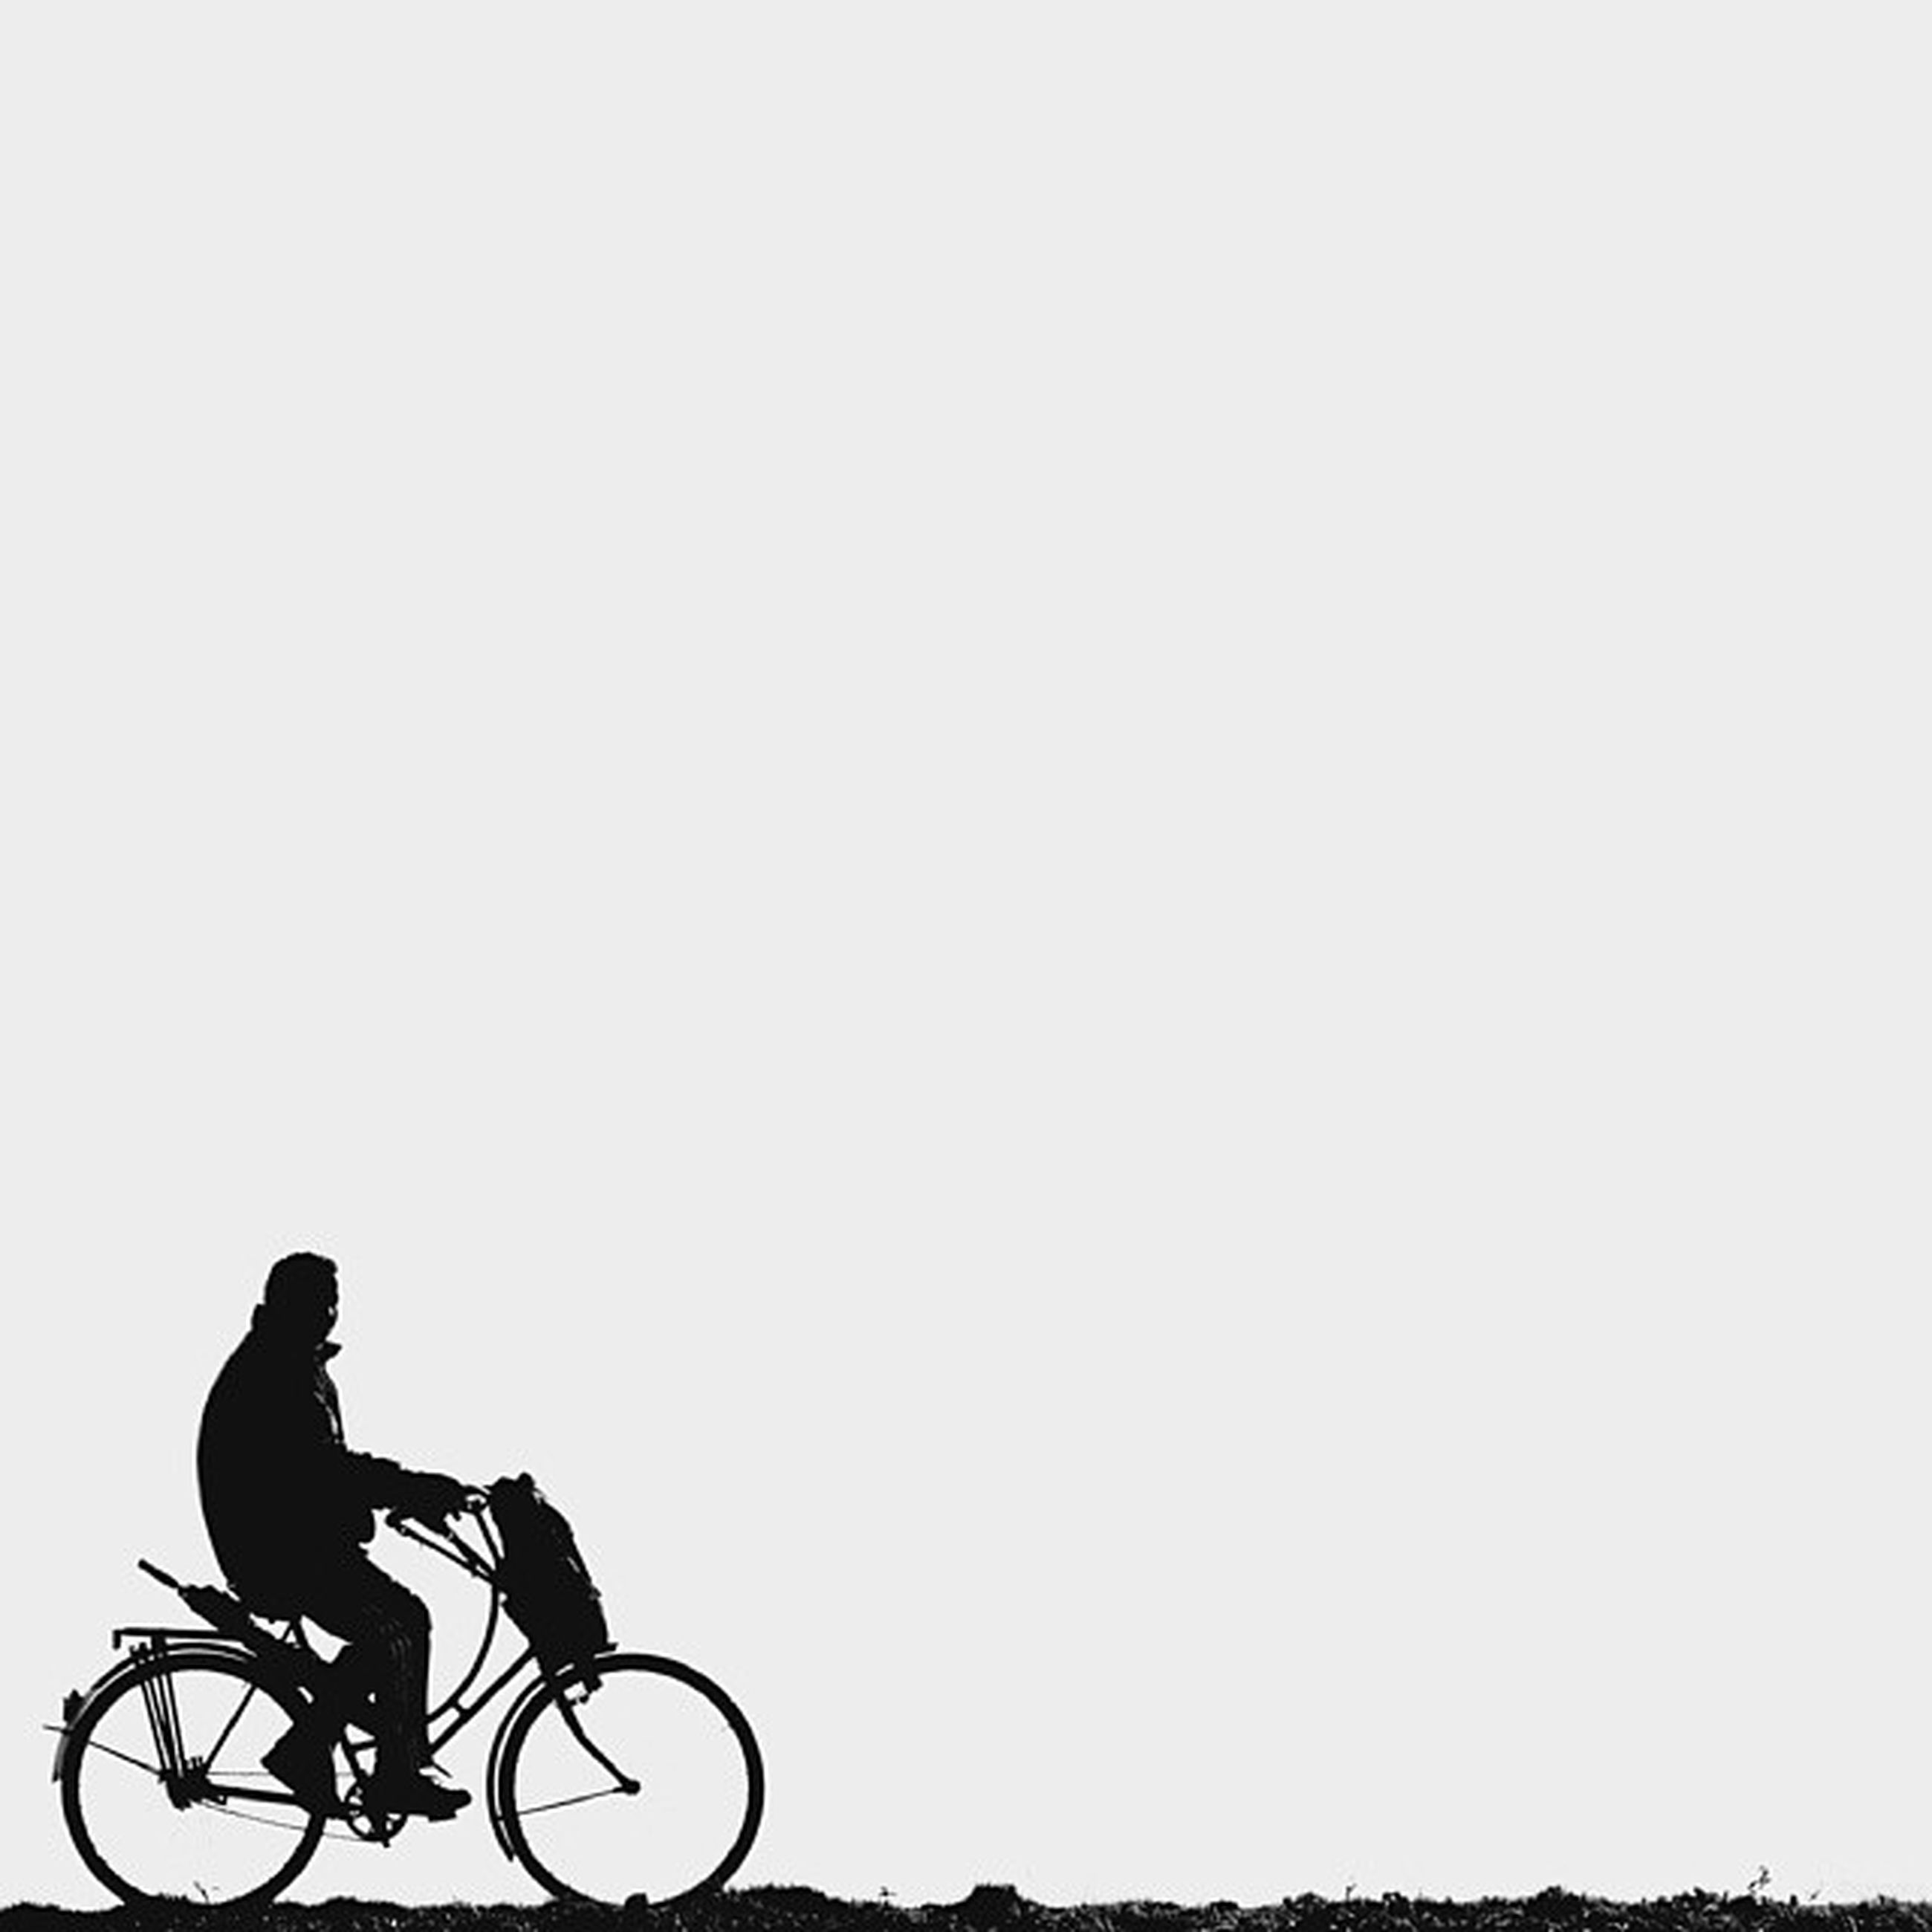 bicycle, land vehicle, transportation, mode of transport, copy space, clear sky, riding, stationary, parked, cycling, parking, side view, full length, silhouette, day, motorcycle, outdoors, road, travel, street